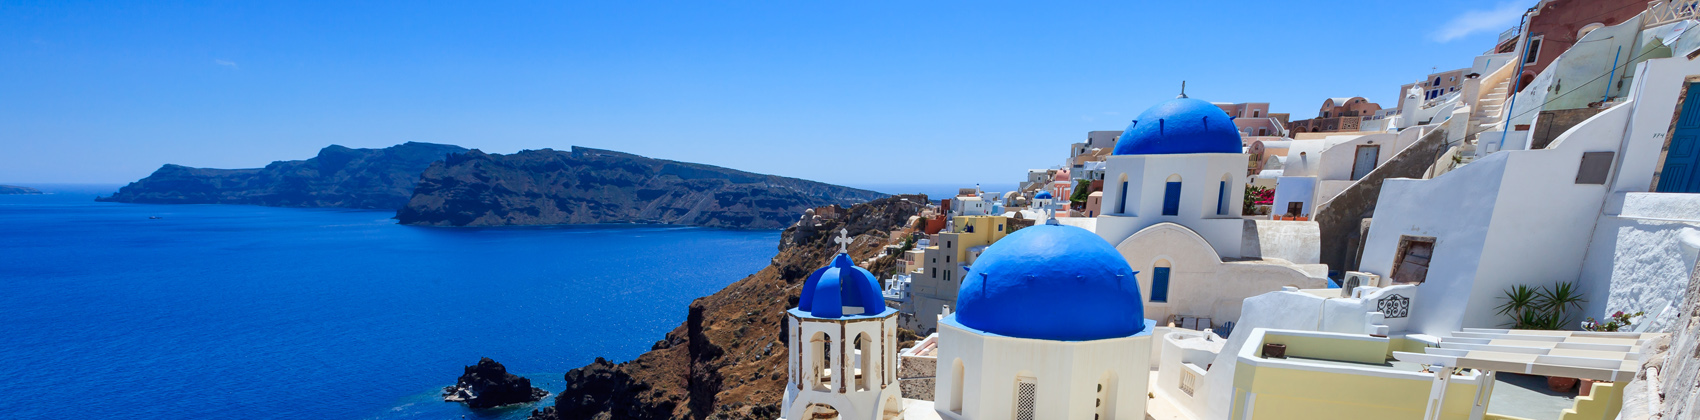 Travel Packages: Greece